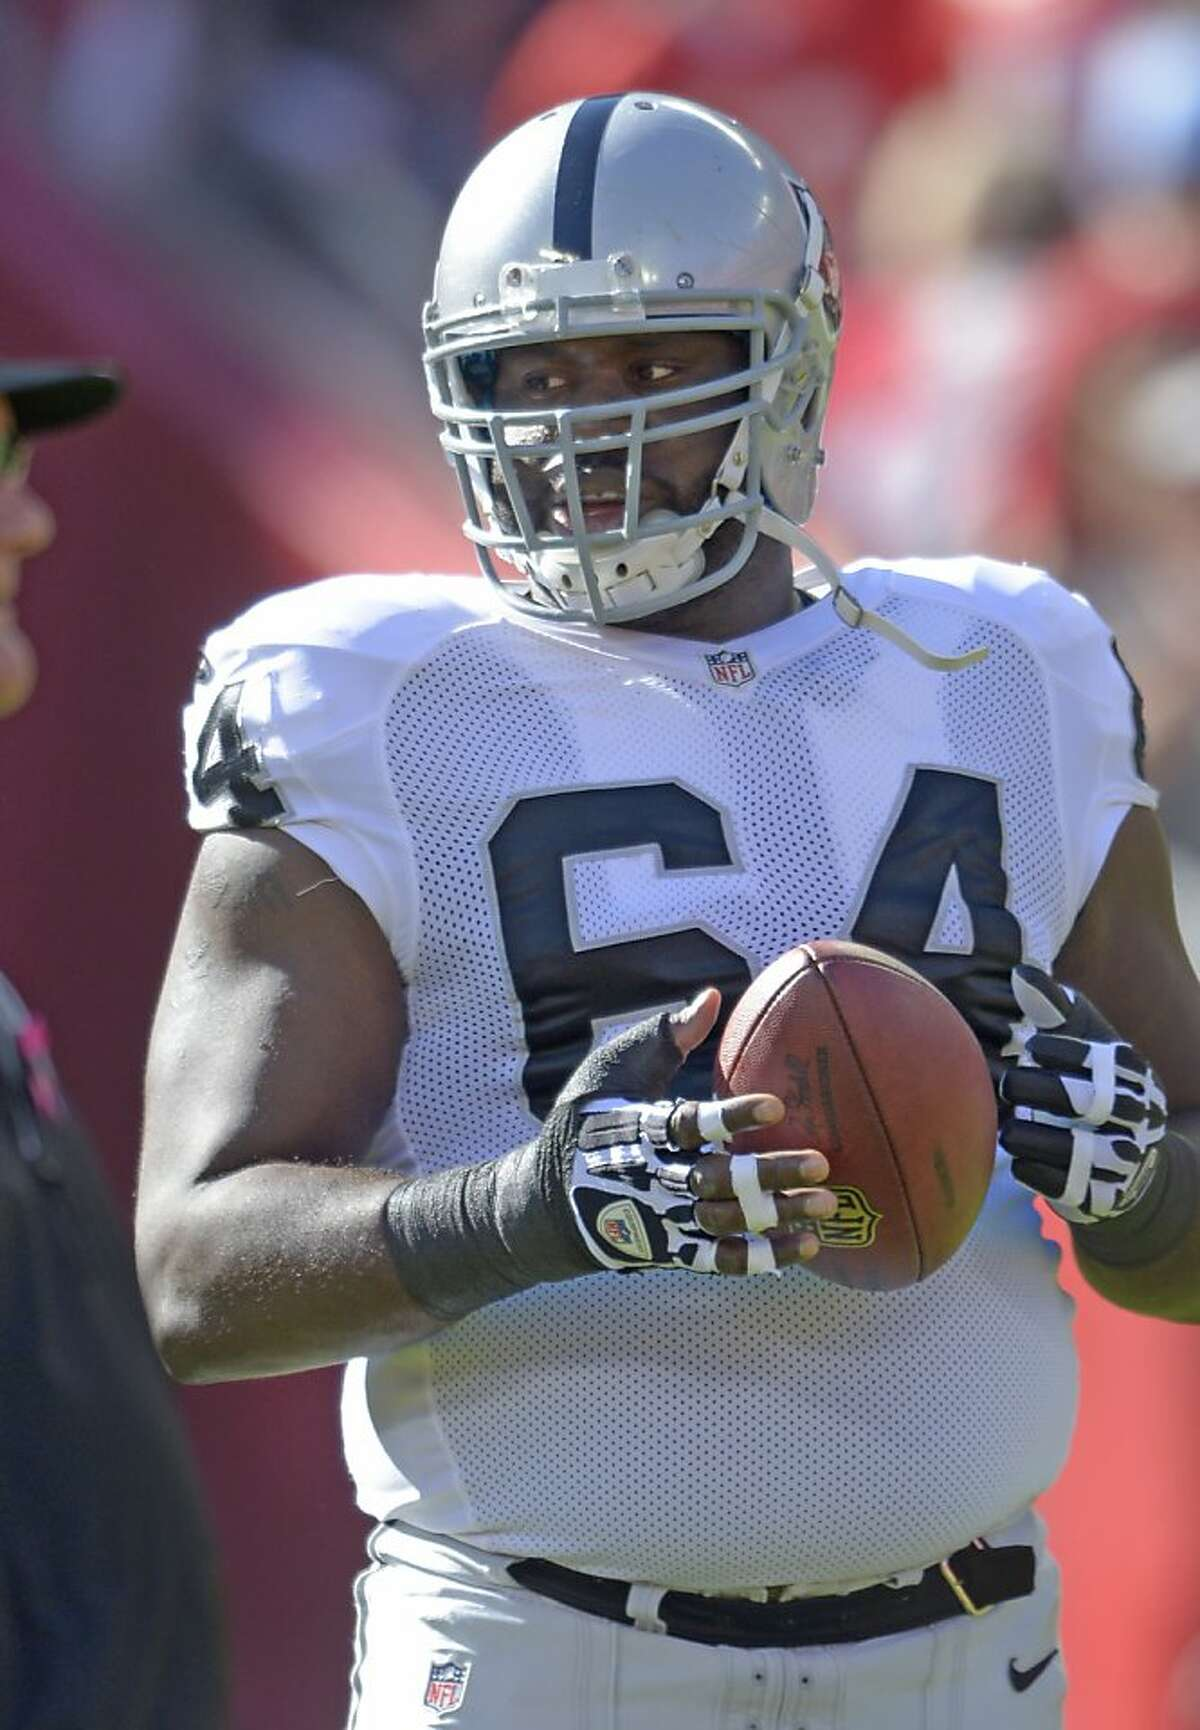 Oakland Raiders guard Andre Gurode (64) during pre-game warmups for an NFL football game in Kansas City, Mo., Sunday, Oct. 13, 2013. (AP Photo/Reed Hoffmann)